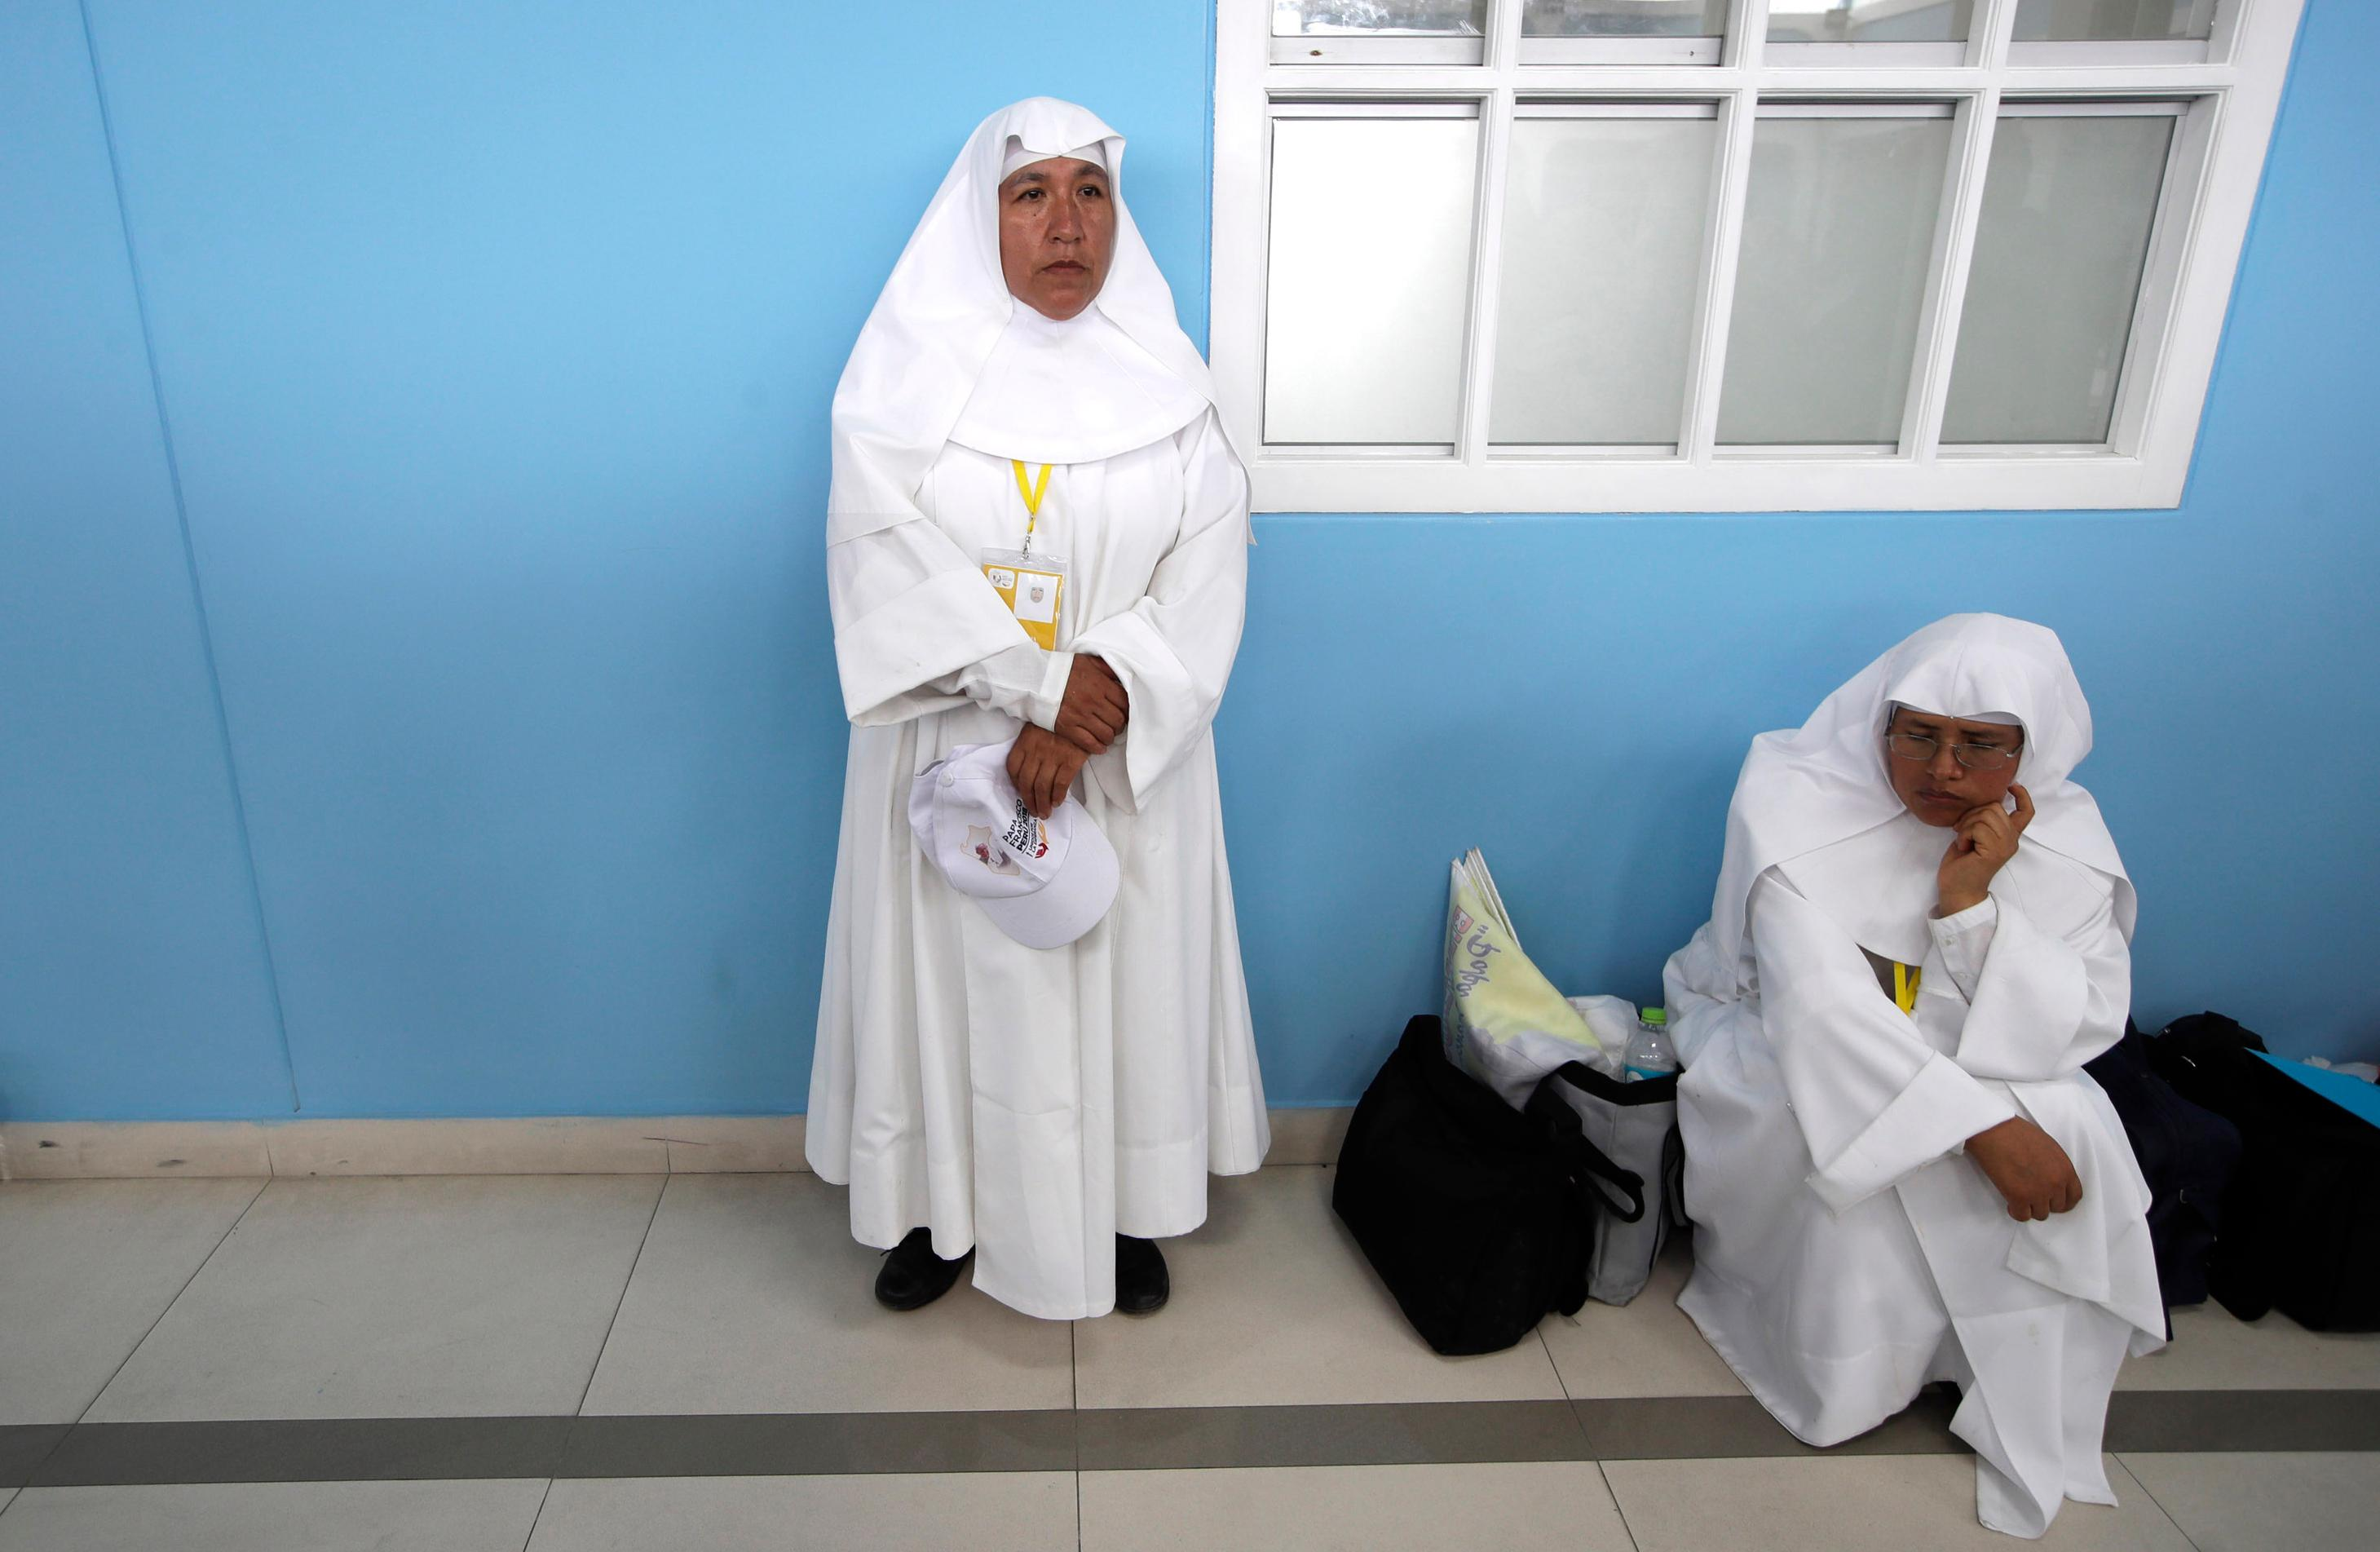 Nuns listen to Pope Francis during his meeting with the priests, religious men and women, and seminarians of the ecclesiastical provinces of Northern Peru in the St. Carlos and Marcelo College, in Trujillo, Peru, Saturday, Jan. 20, 2018. Francis is the second pope to visit the coastal city, which is periodically drenched by disastrous rains caused by a warming of Pacific Ocean waters. (AP Photo/Alessandra Tarantino)